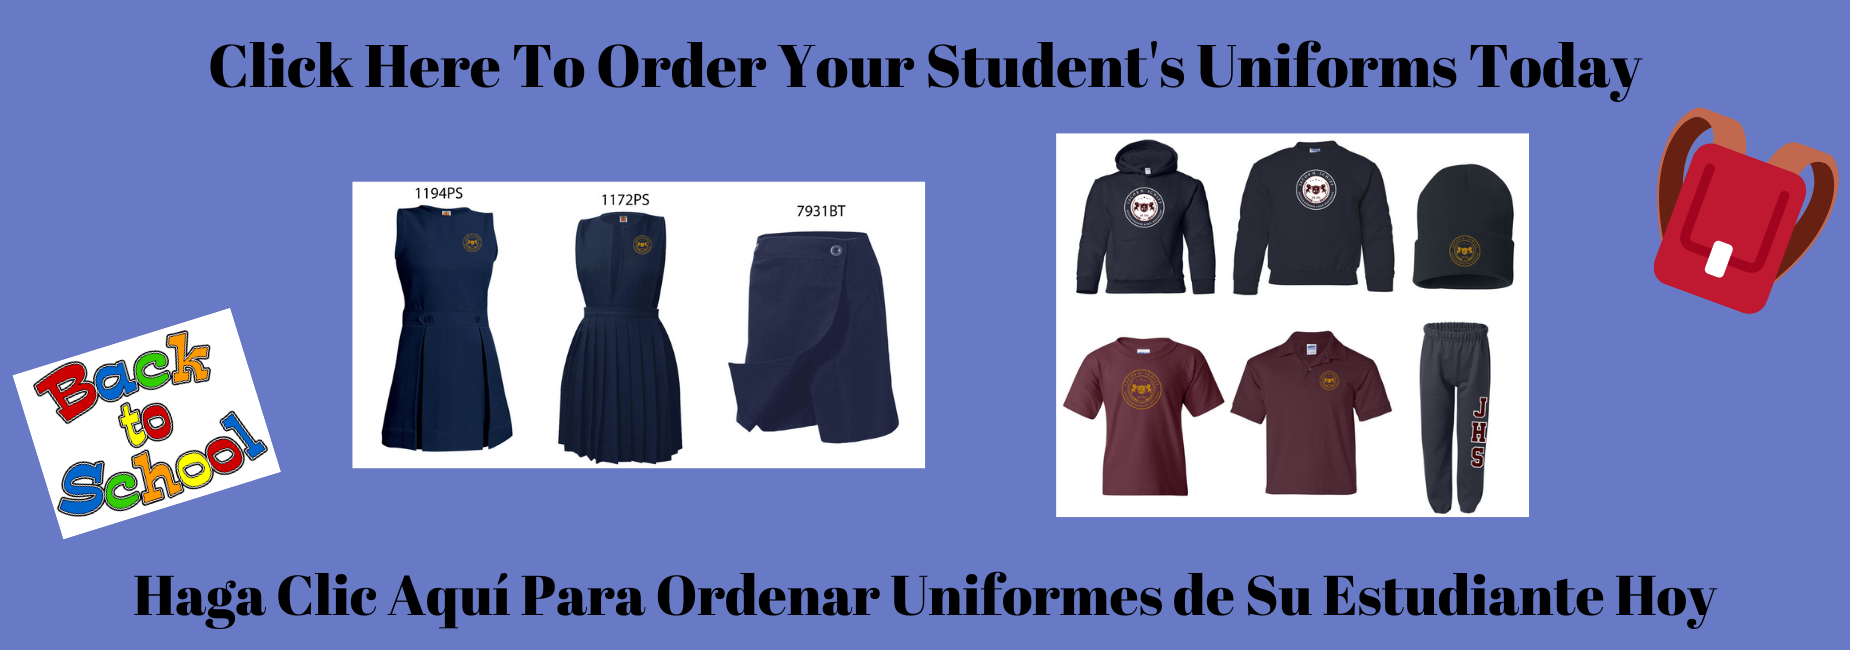 Image of uniforms and message to click to order uniforms